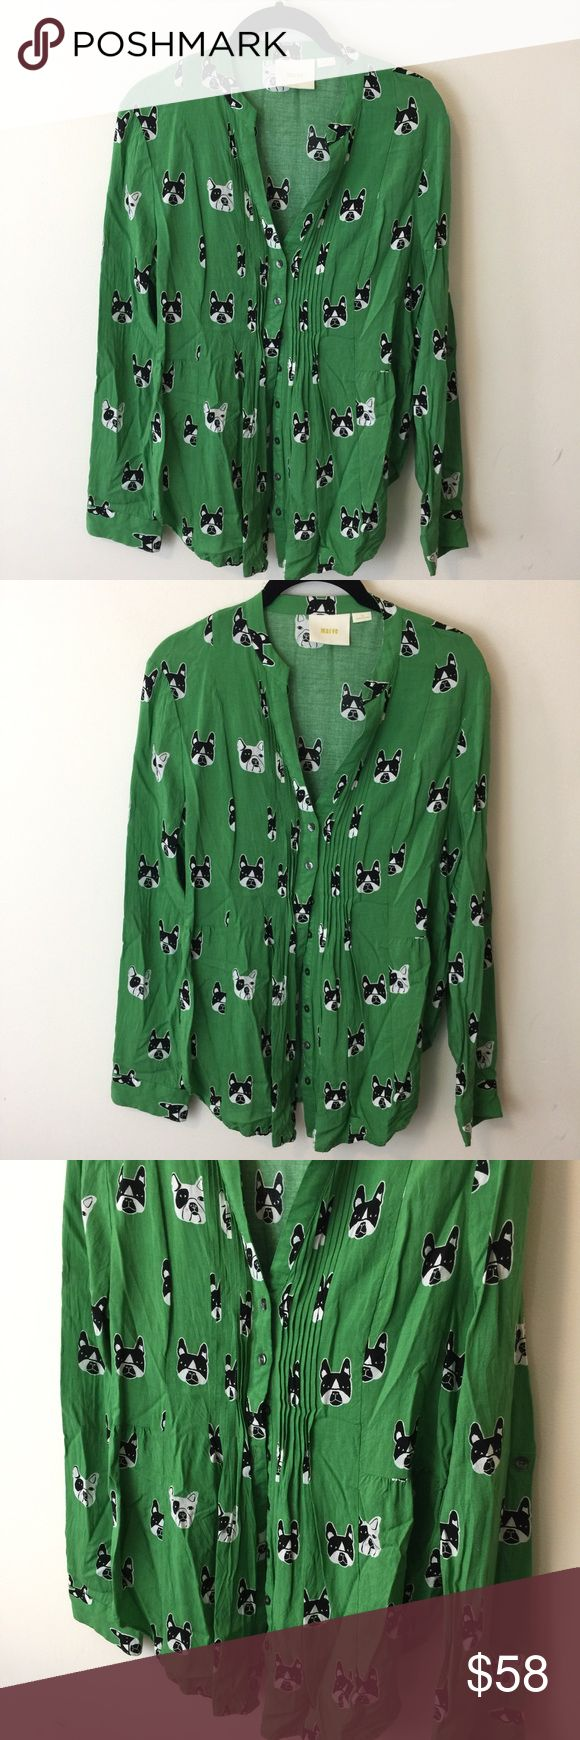 Maeve Green New York Terrier Dog Puppy Shirt Maeve New York Terrier Shirt with a cute puppy print and a button center is a size. 12 worn twice and is in good condition! Anthropologie Tops